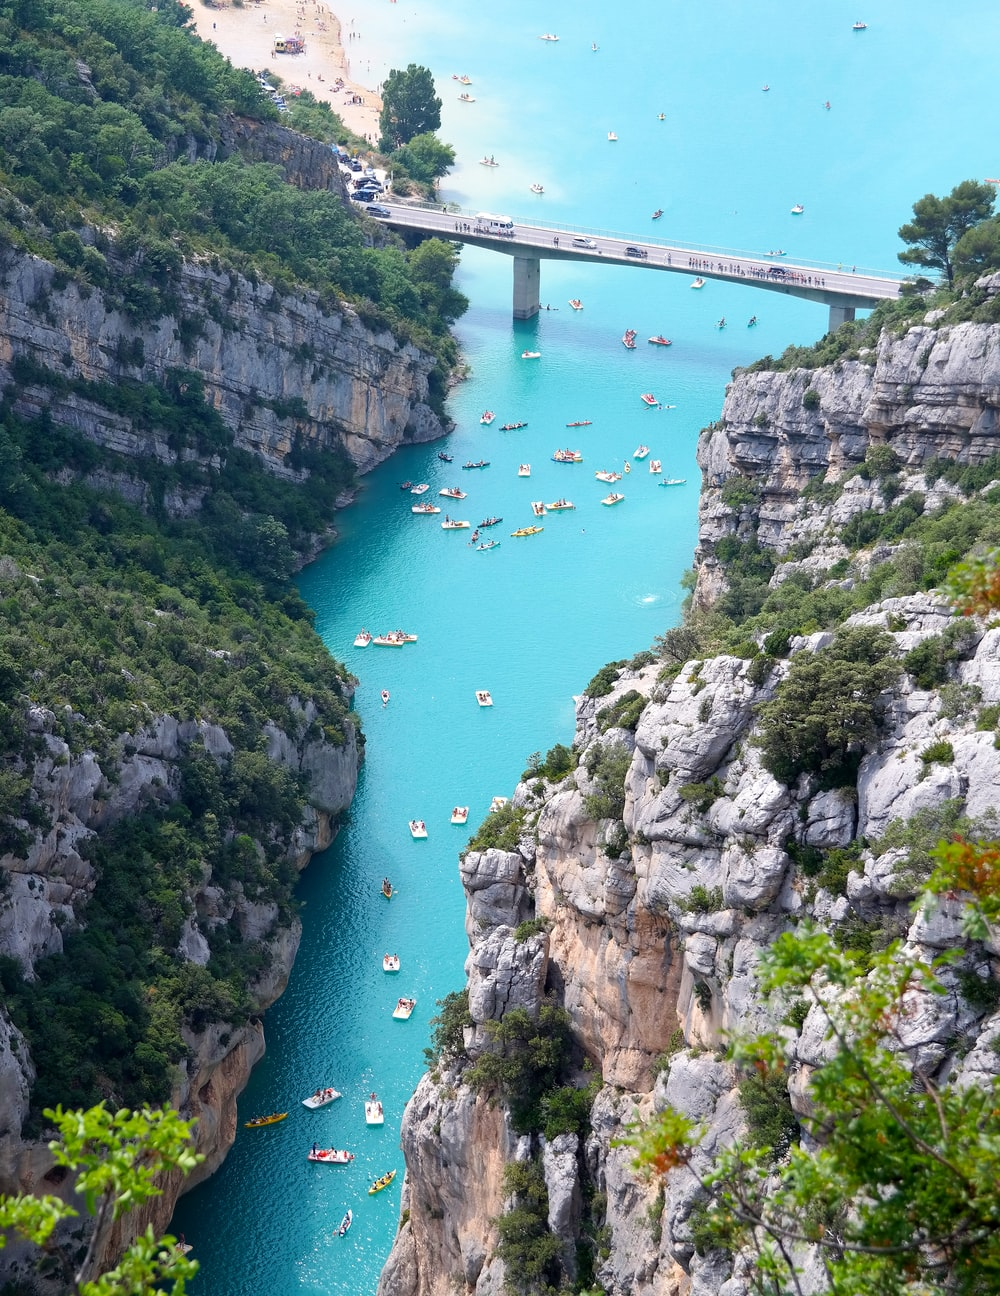 aerial view of boats on body of water beside mountain